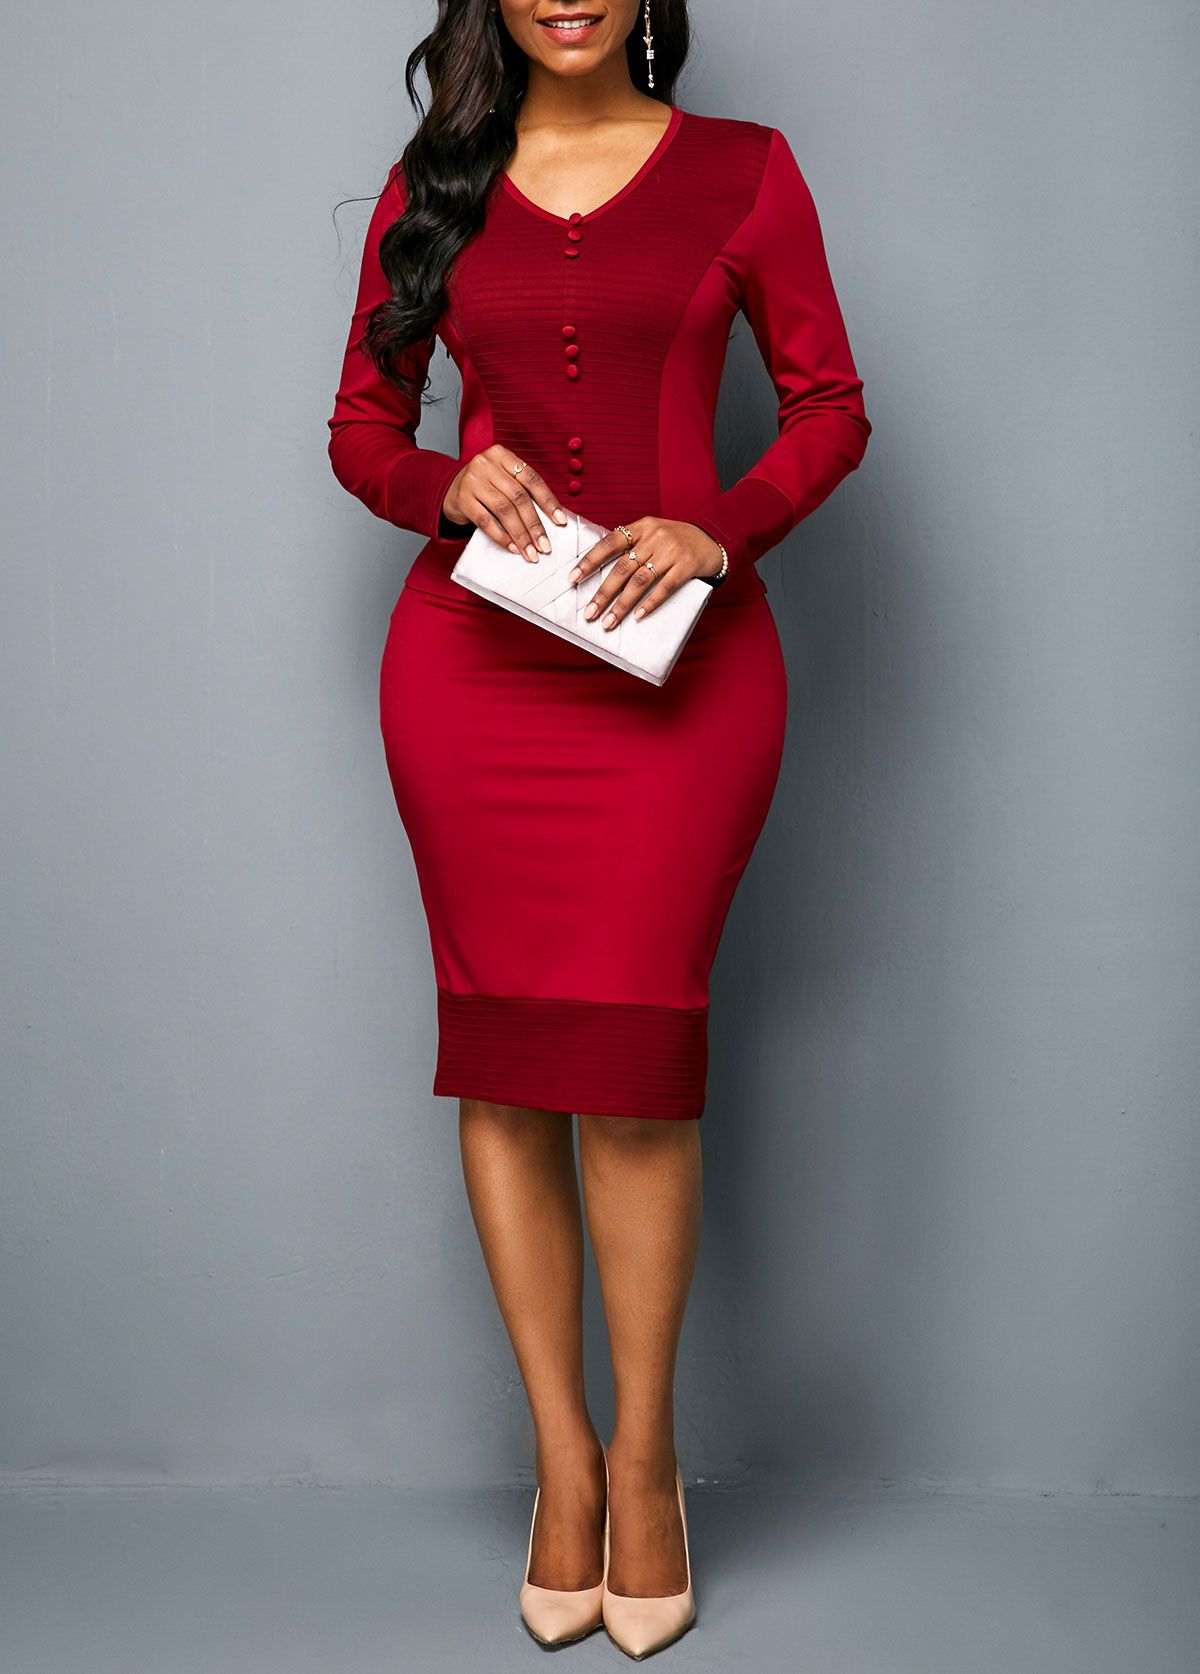 9daffe60df9 V Neck Long Sleeve Sheath Dress | Rotita.com - USD $28.63 | Michele ...